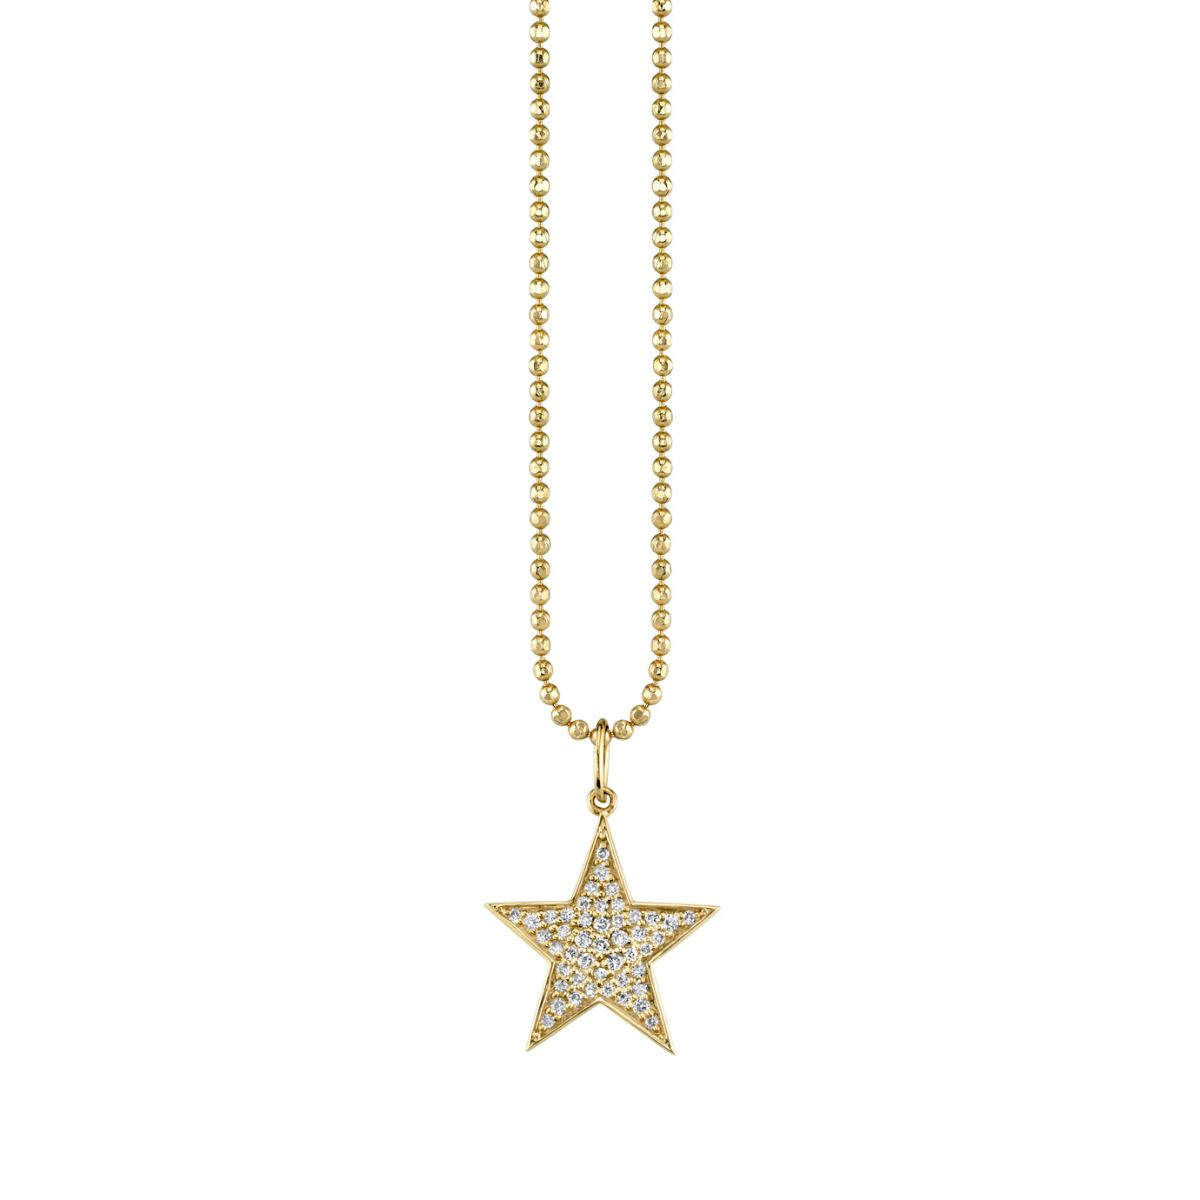 Medium Yellow Gold & Diamond Star Charm Necklace Within Newest Medium Diamond Necklaces (View 15 of 25)